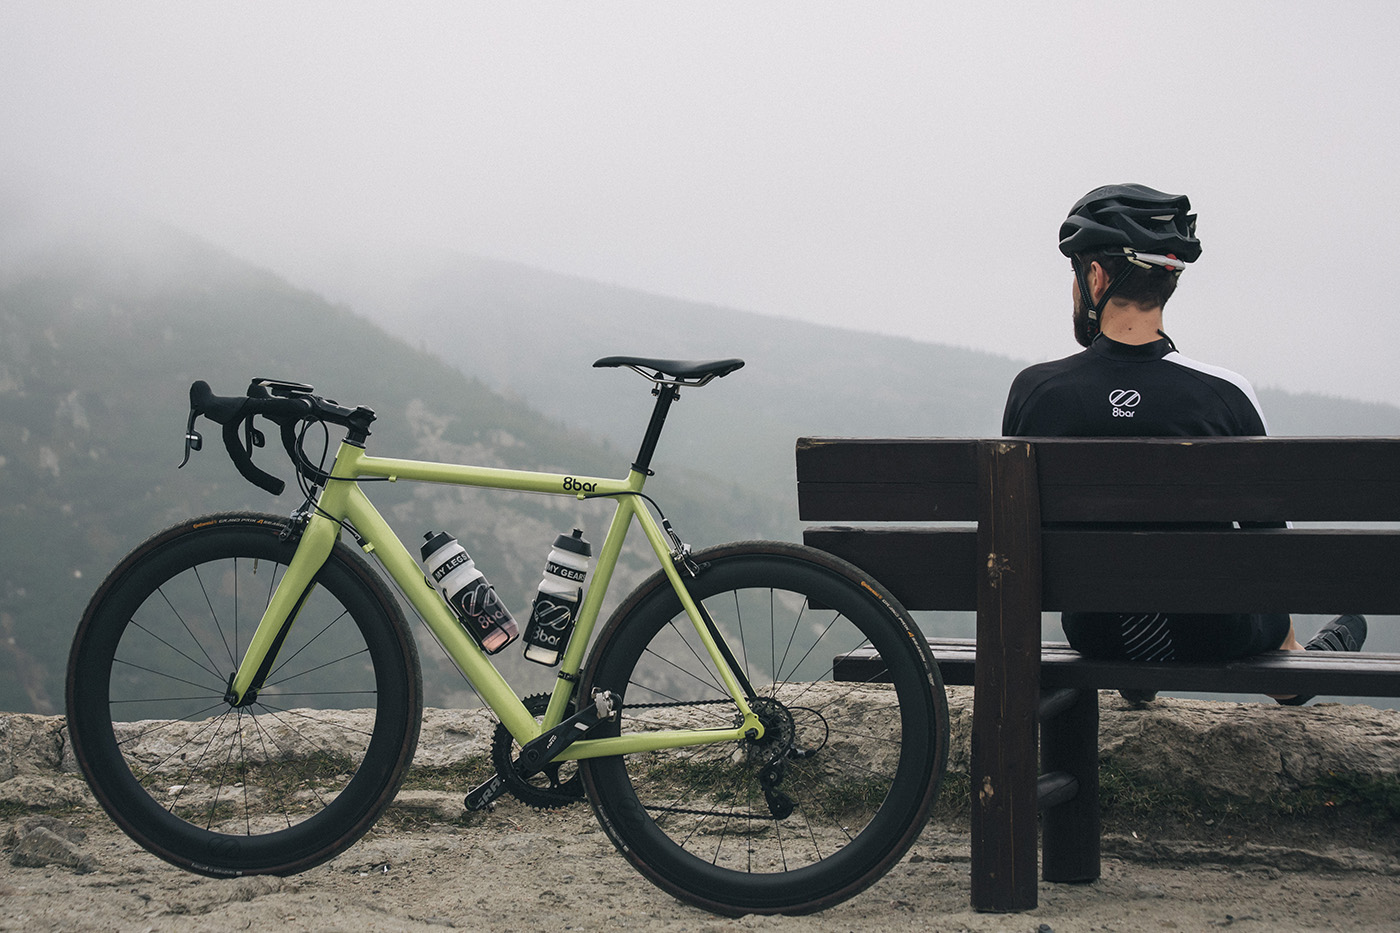 8bar adventures schneekoppe roadie roadbikes rapha 003s